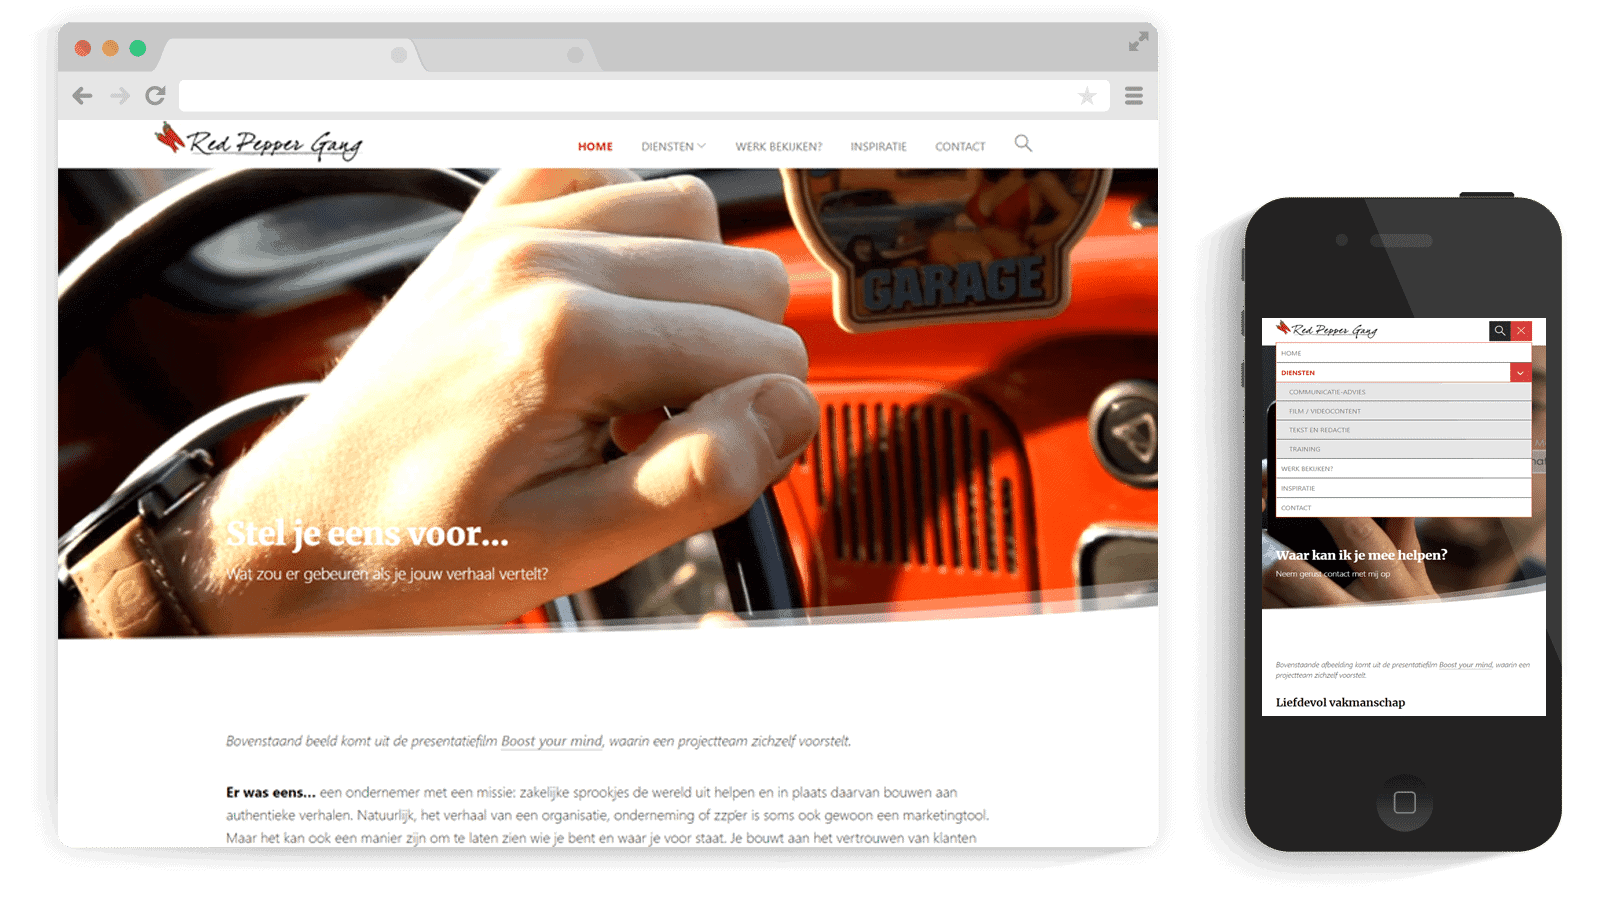 Project Photo Responsive WordPress website for Redpeppergang